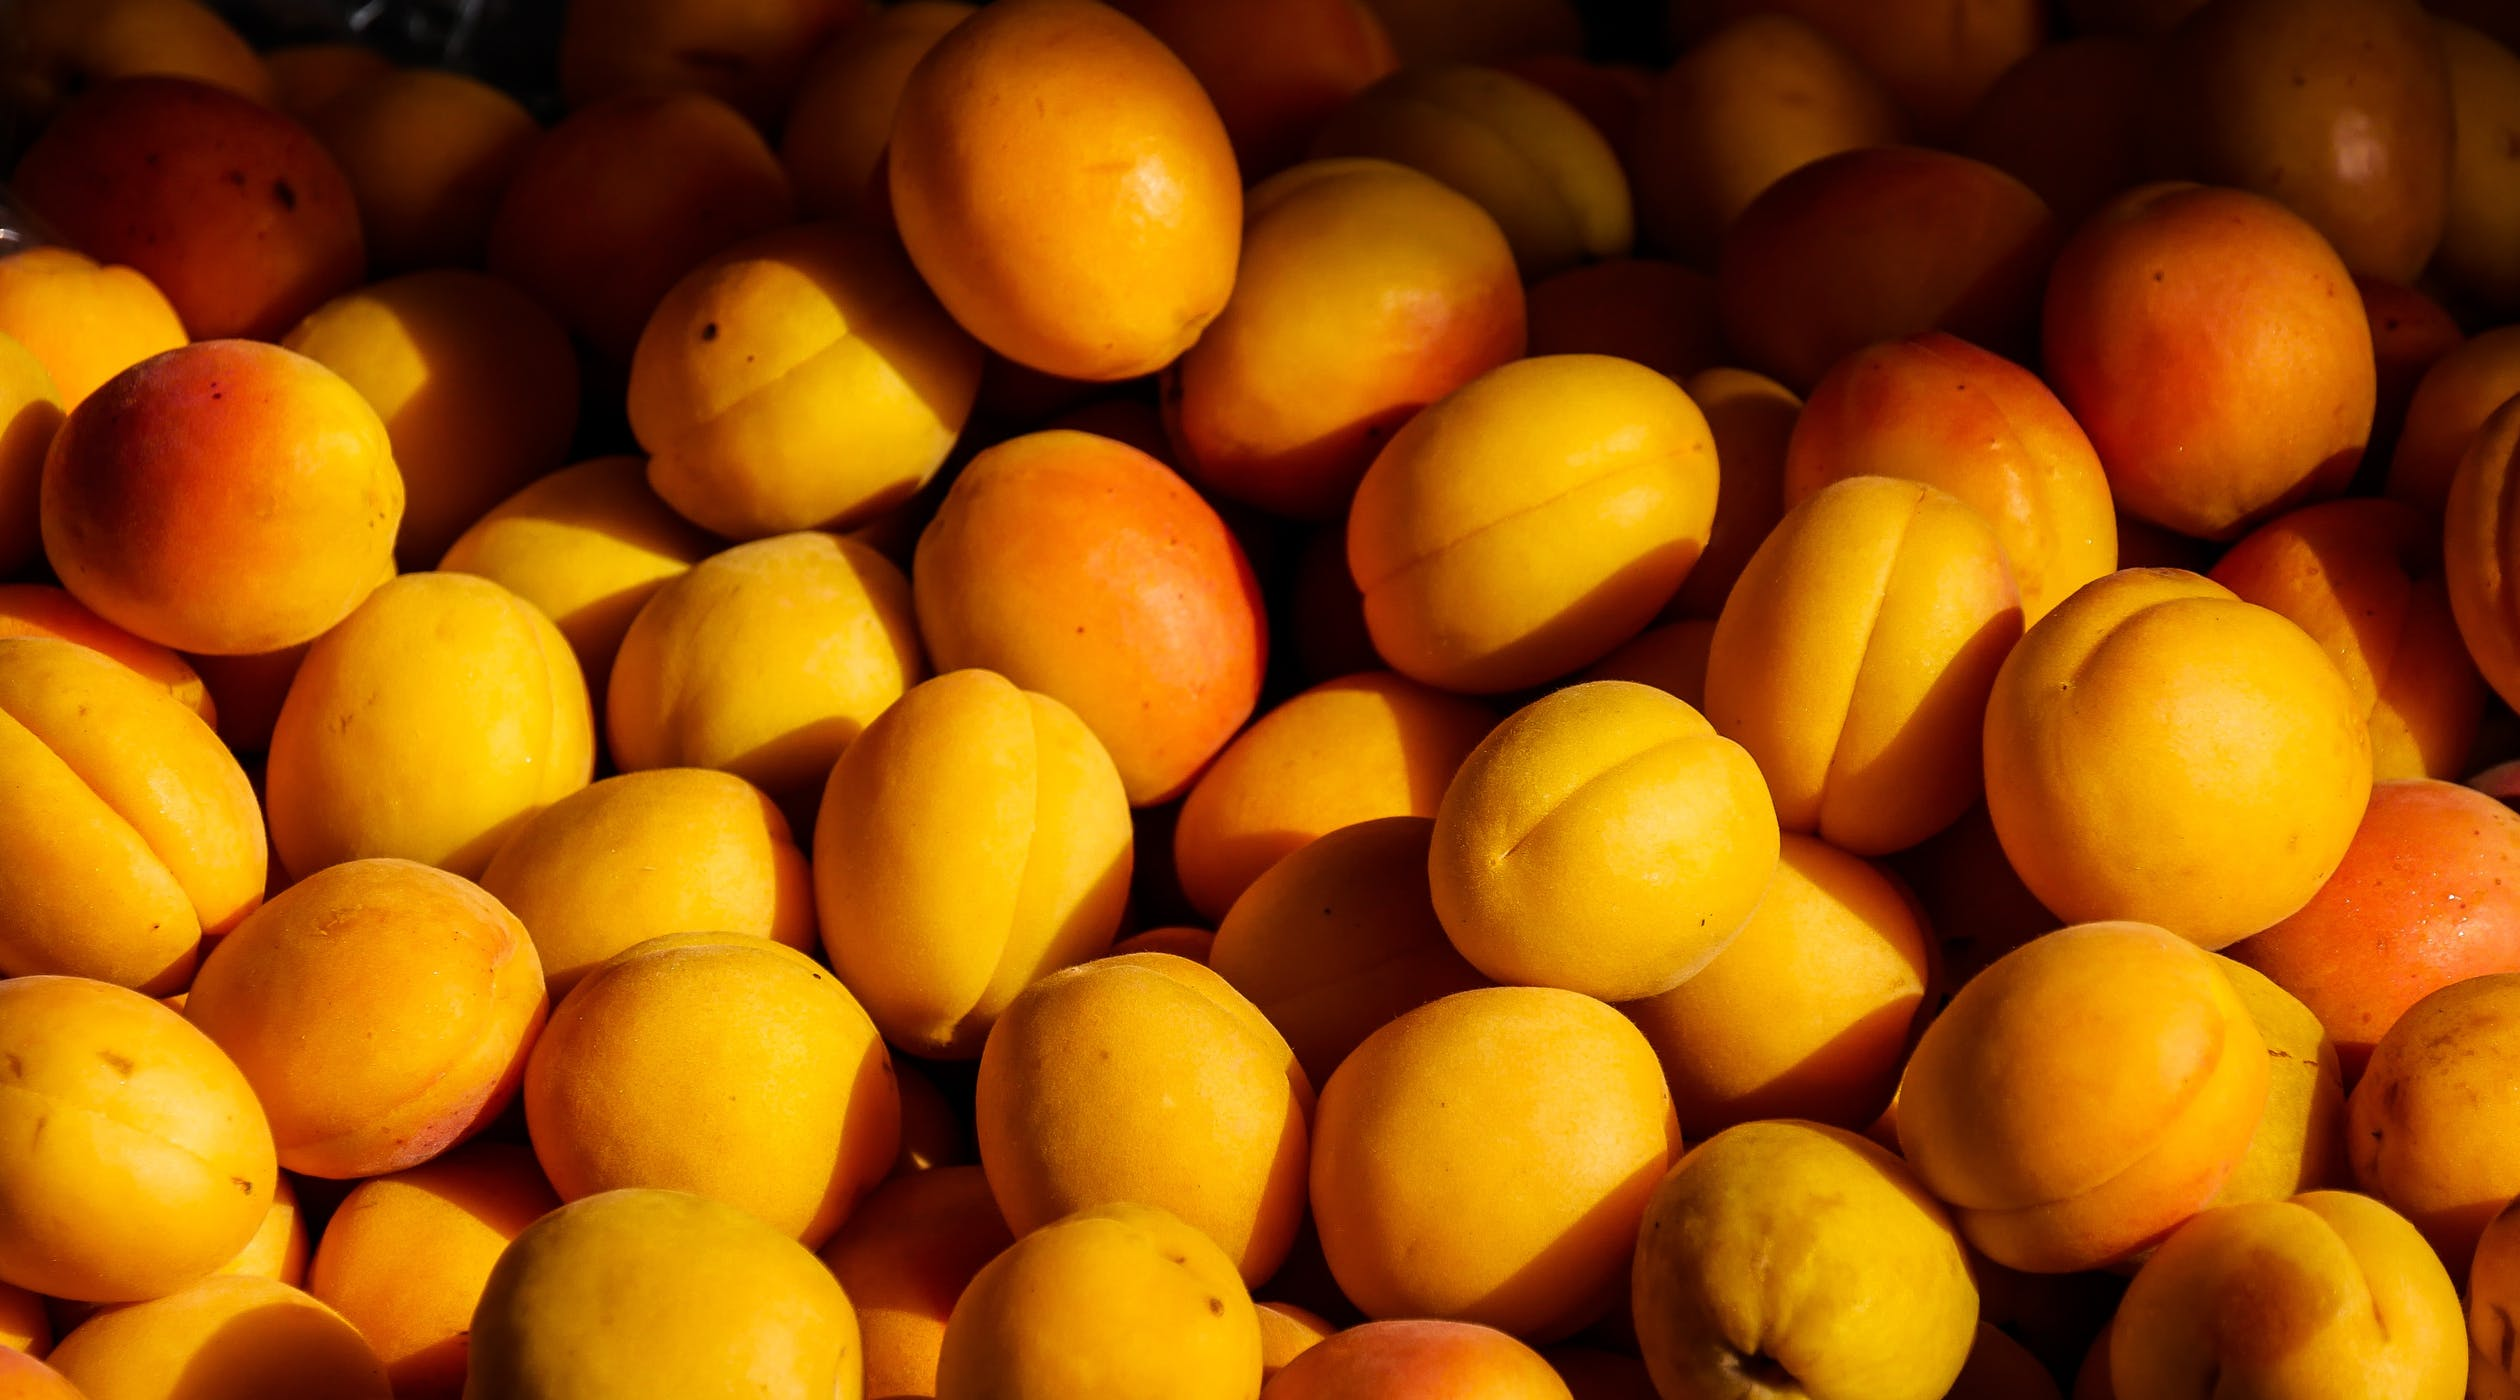 Which country grows the most peaches?